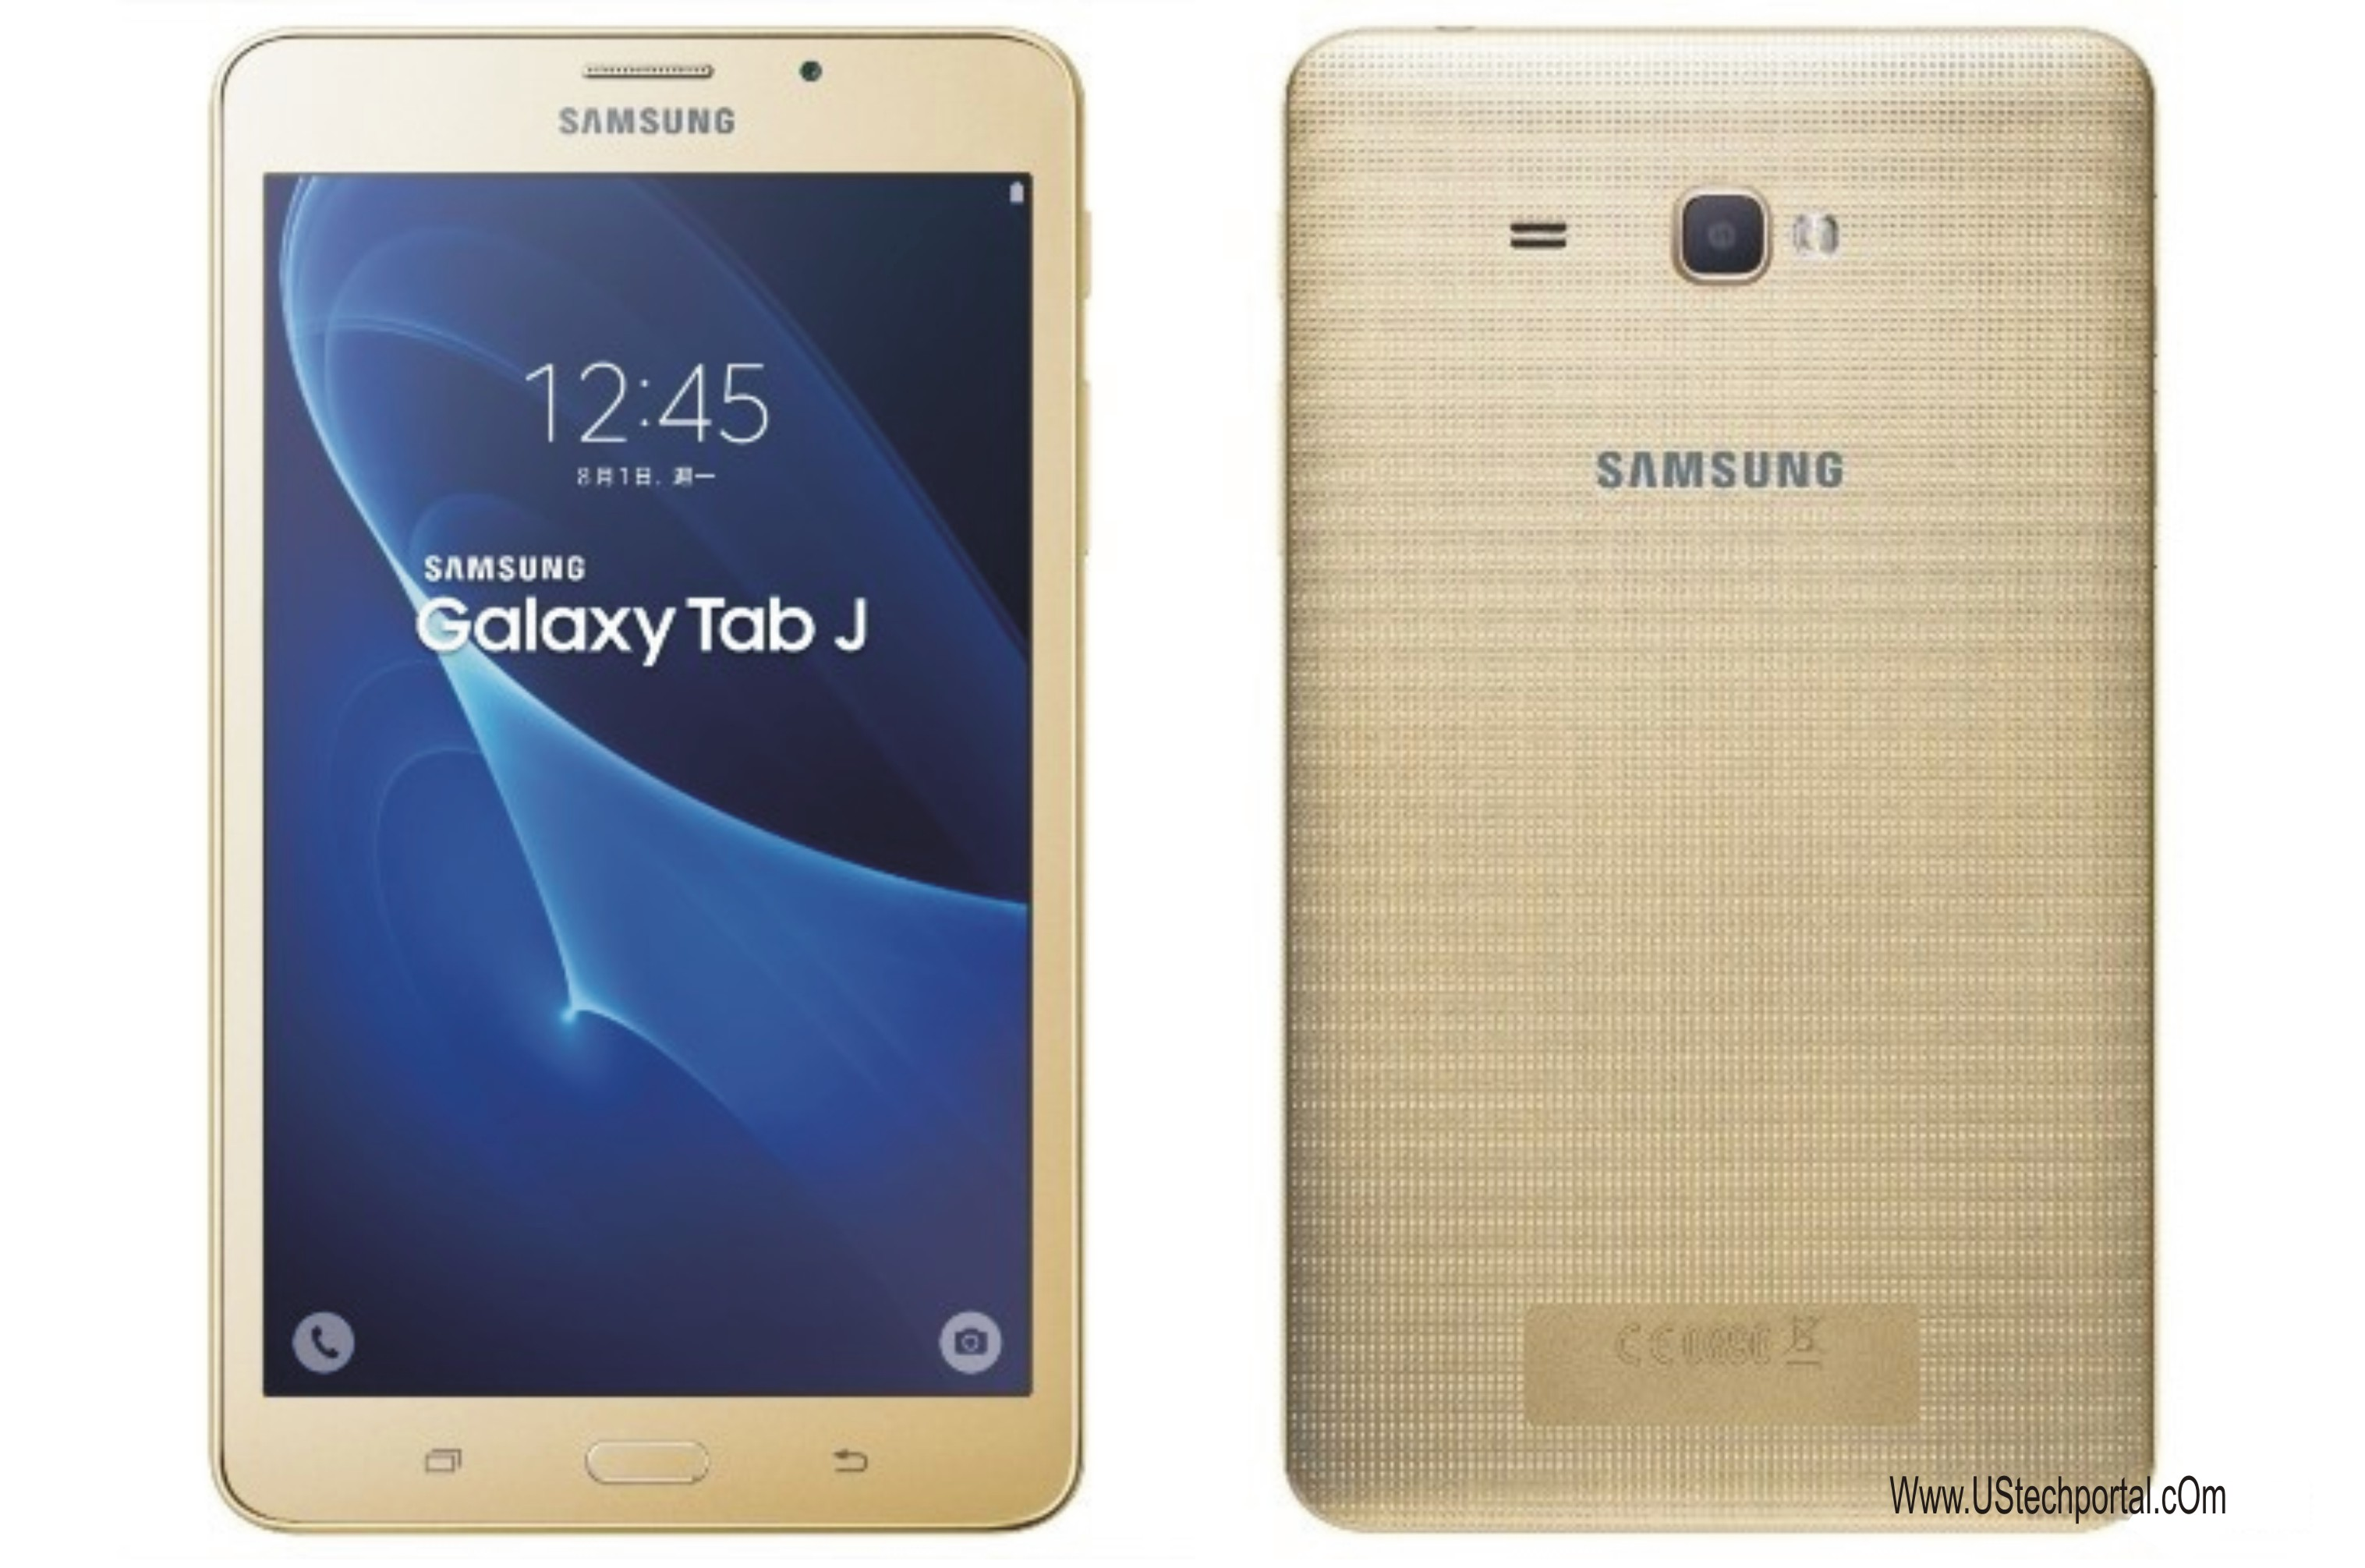 Samsung Galaxy Tab J Full Specification, Price, Features, Review